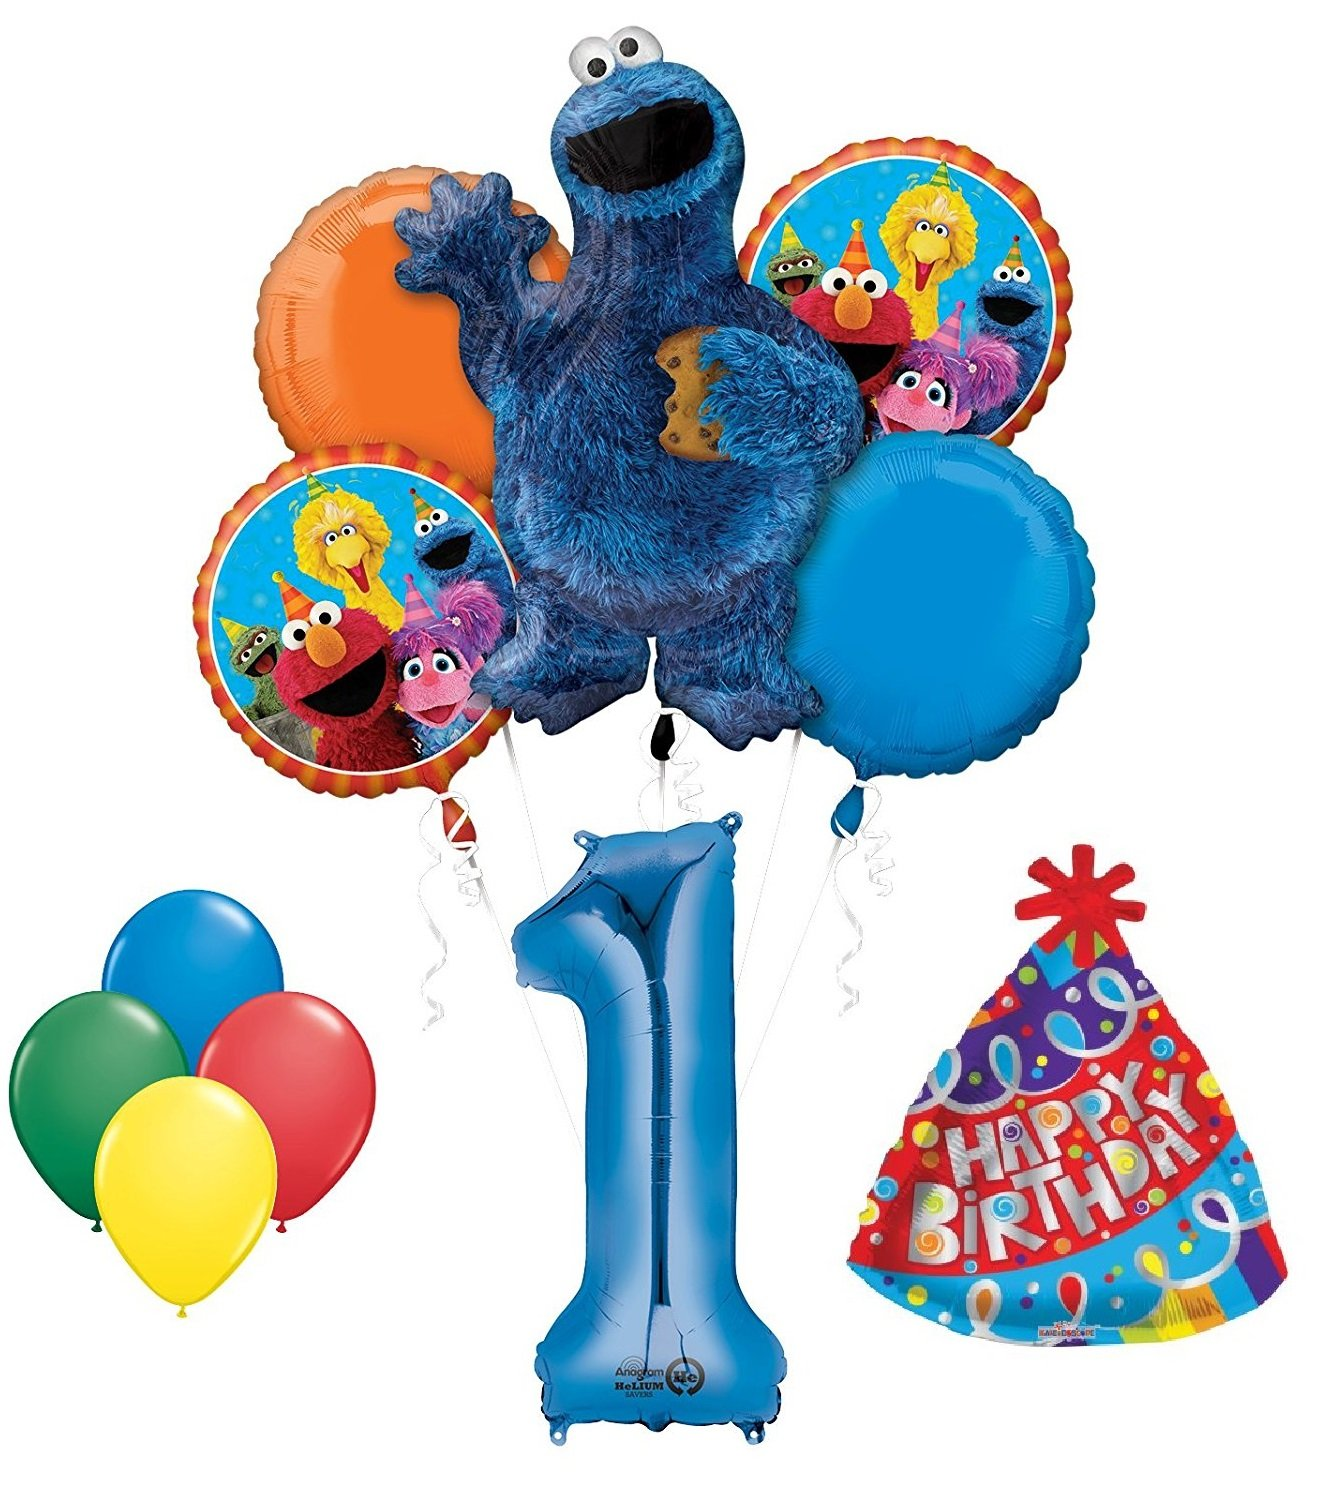 Amazon Cookie Monster Sesame Street 1st Birthday Party Supplies And Balloon Decorations Set Of 11 Toys Games